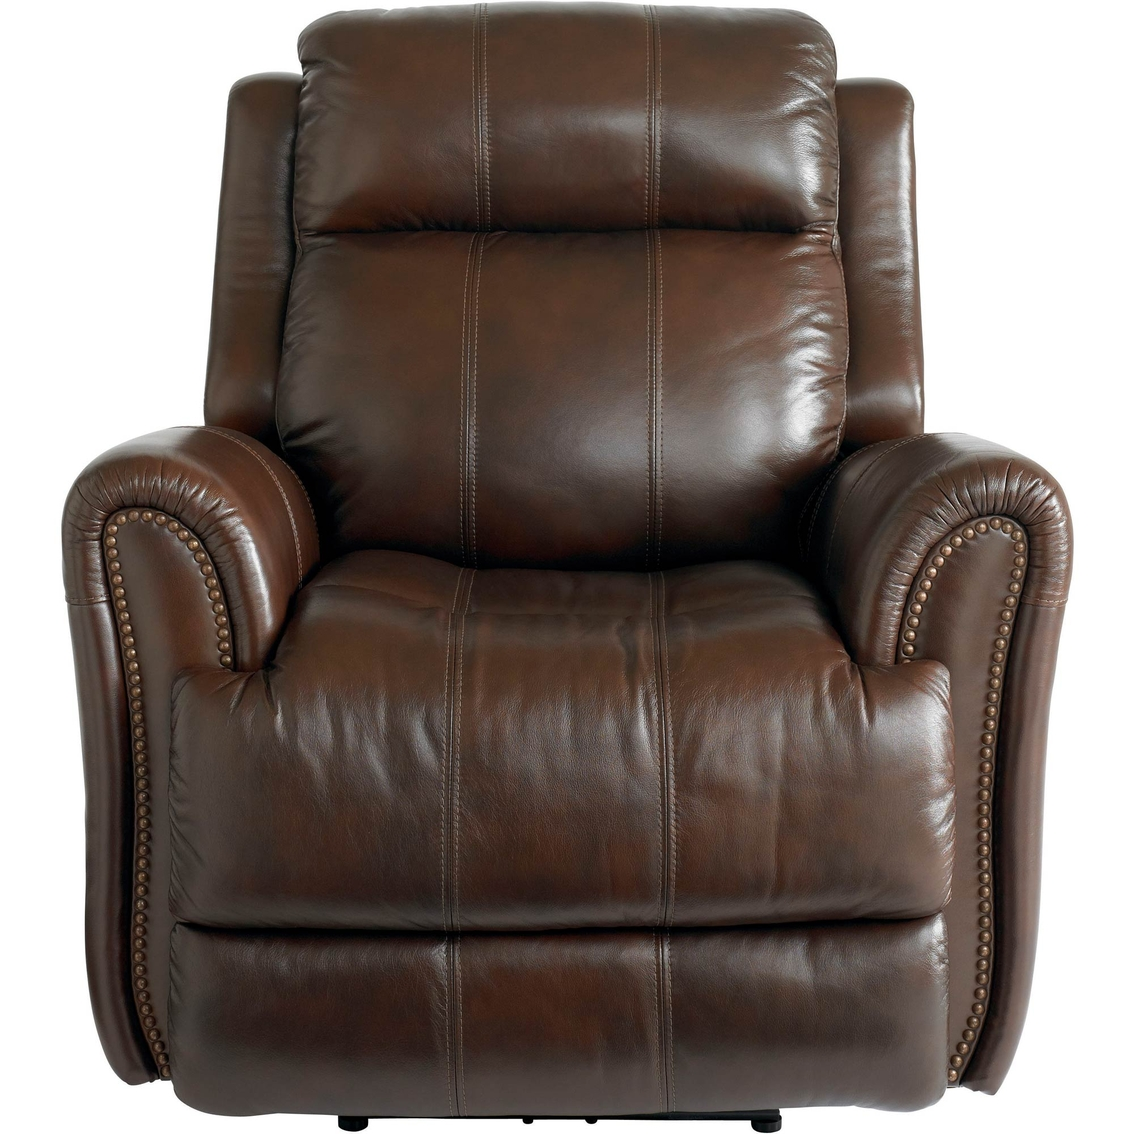 Bassett Club Level Marquee Wallsaver Power Recliner Chairs Recliners Furniture Appliances Shop The Exchange